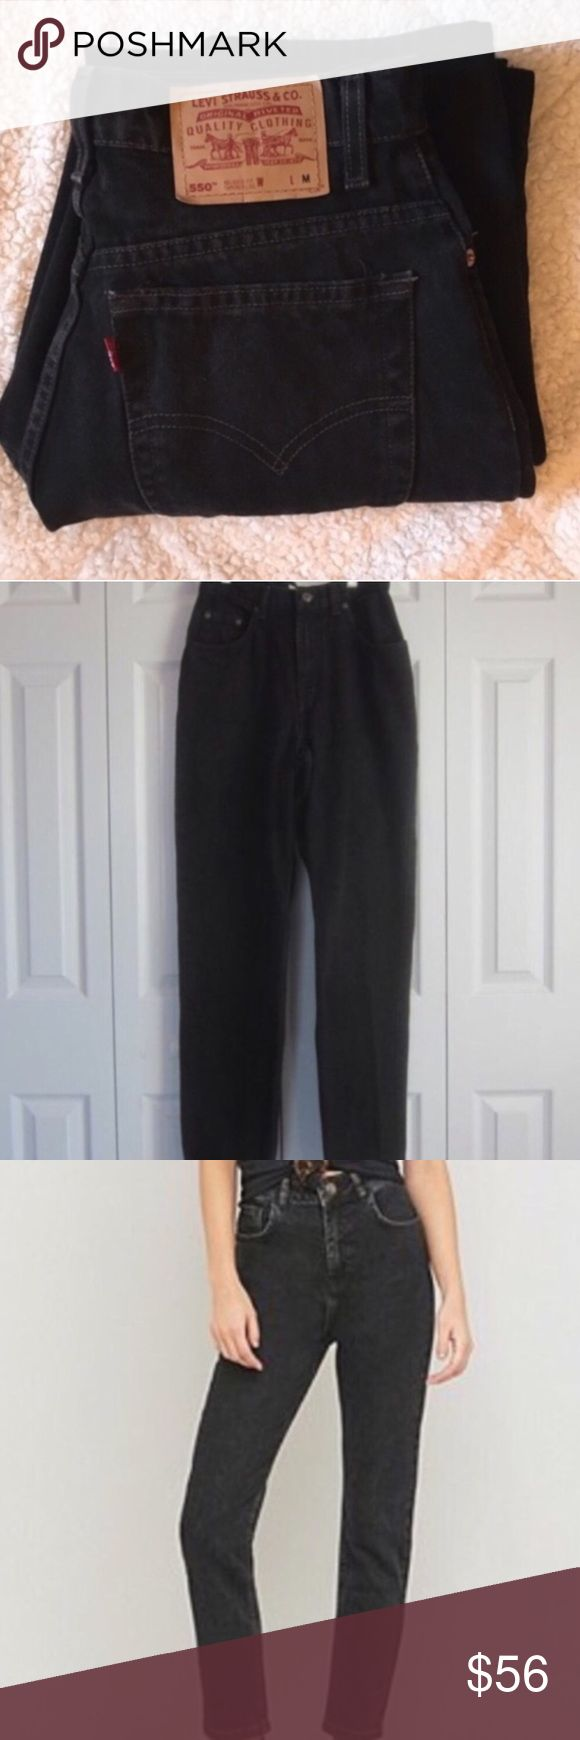 Vintage High Waisted Black Levi's High quality vintage black high Waisted Levi jeans. 100% Genuine Levi's. The perfect pair of mom jeans. Since these are a vintage item some pair have had tags removed but all Jeans are sized to be true to fit! Levi's Jeans